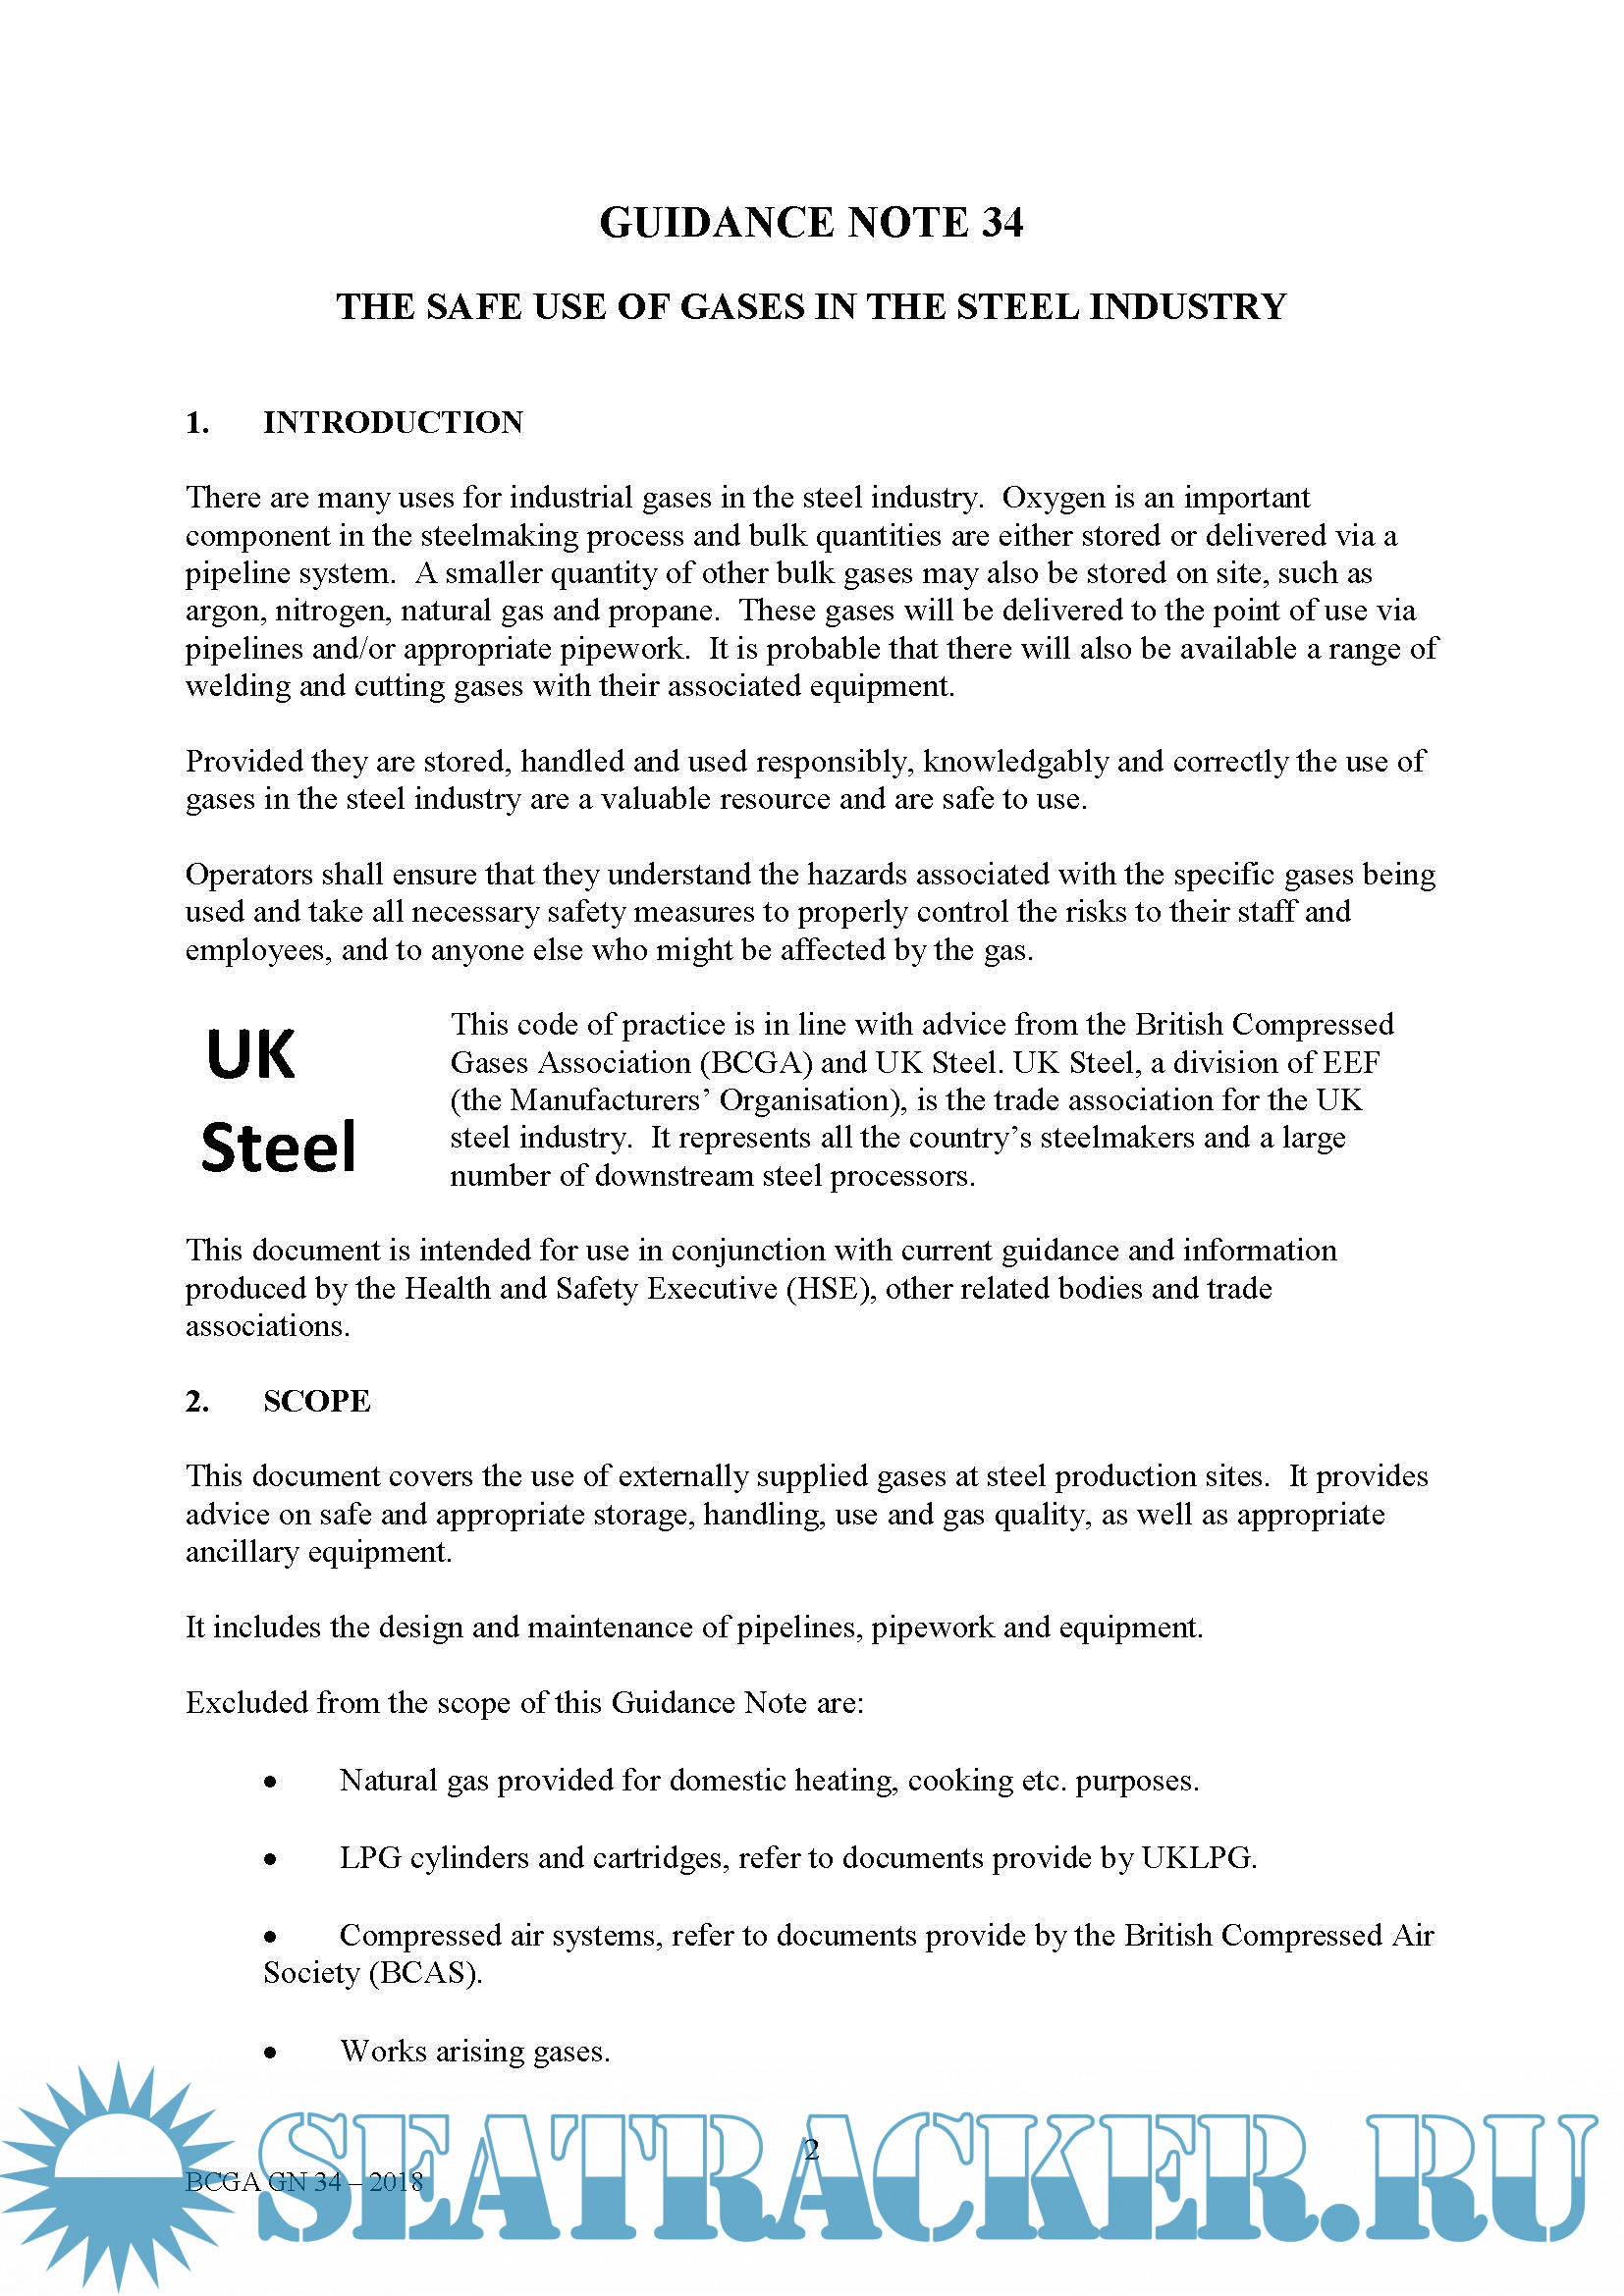 Guidance Note 34, The Safe Use of Gases in the Steel industry - BCGA